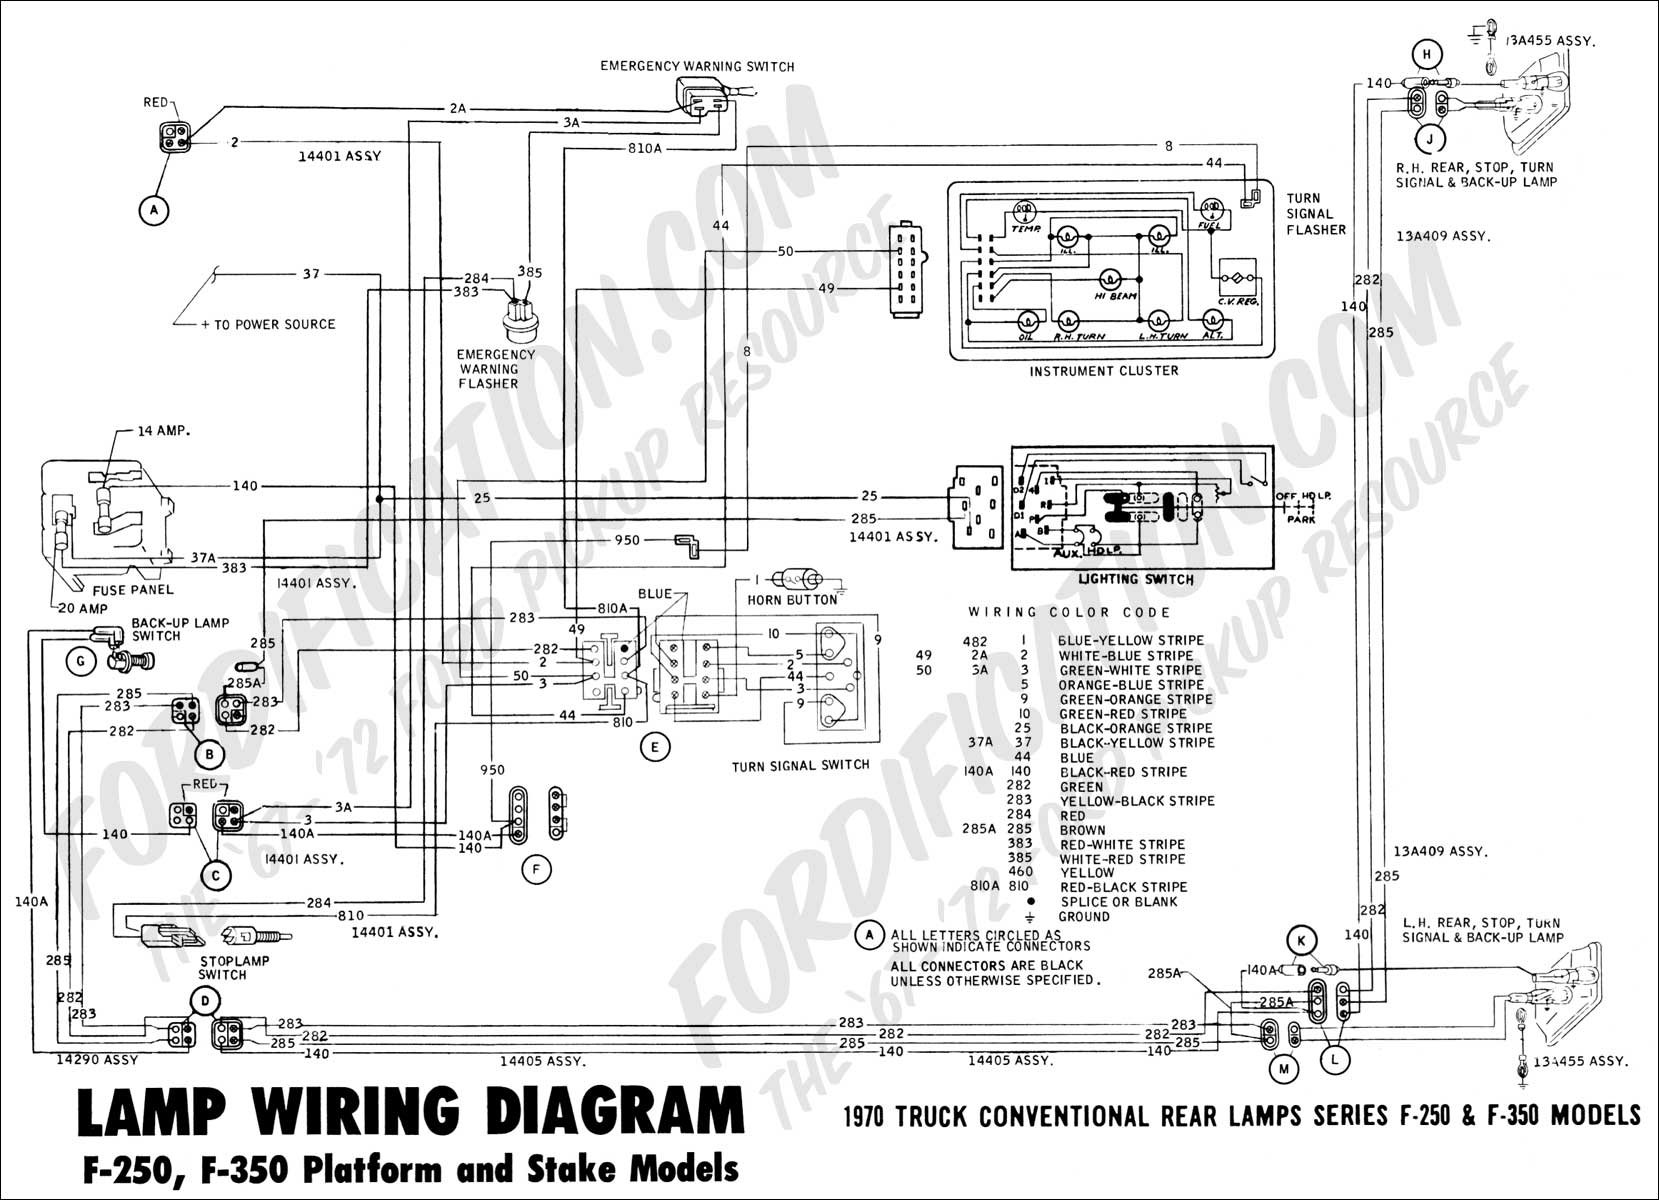 Ford Truck Wiring Diagrams Together With Ford F 250 Fuse Box Diagram